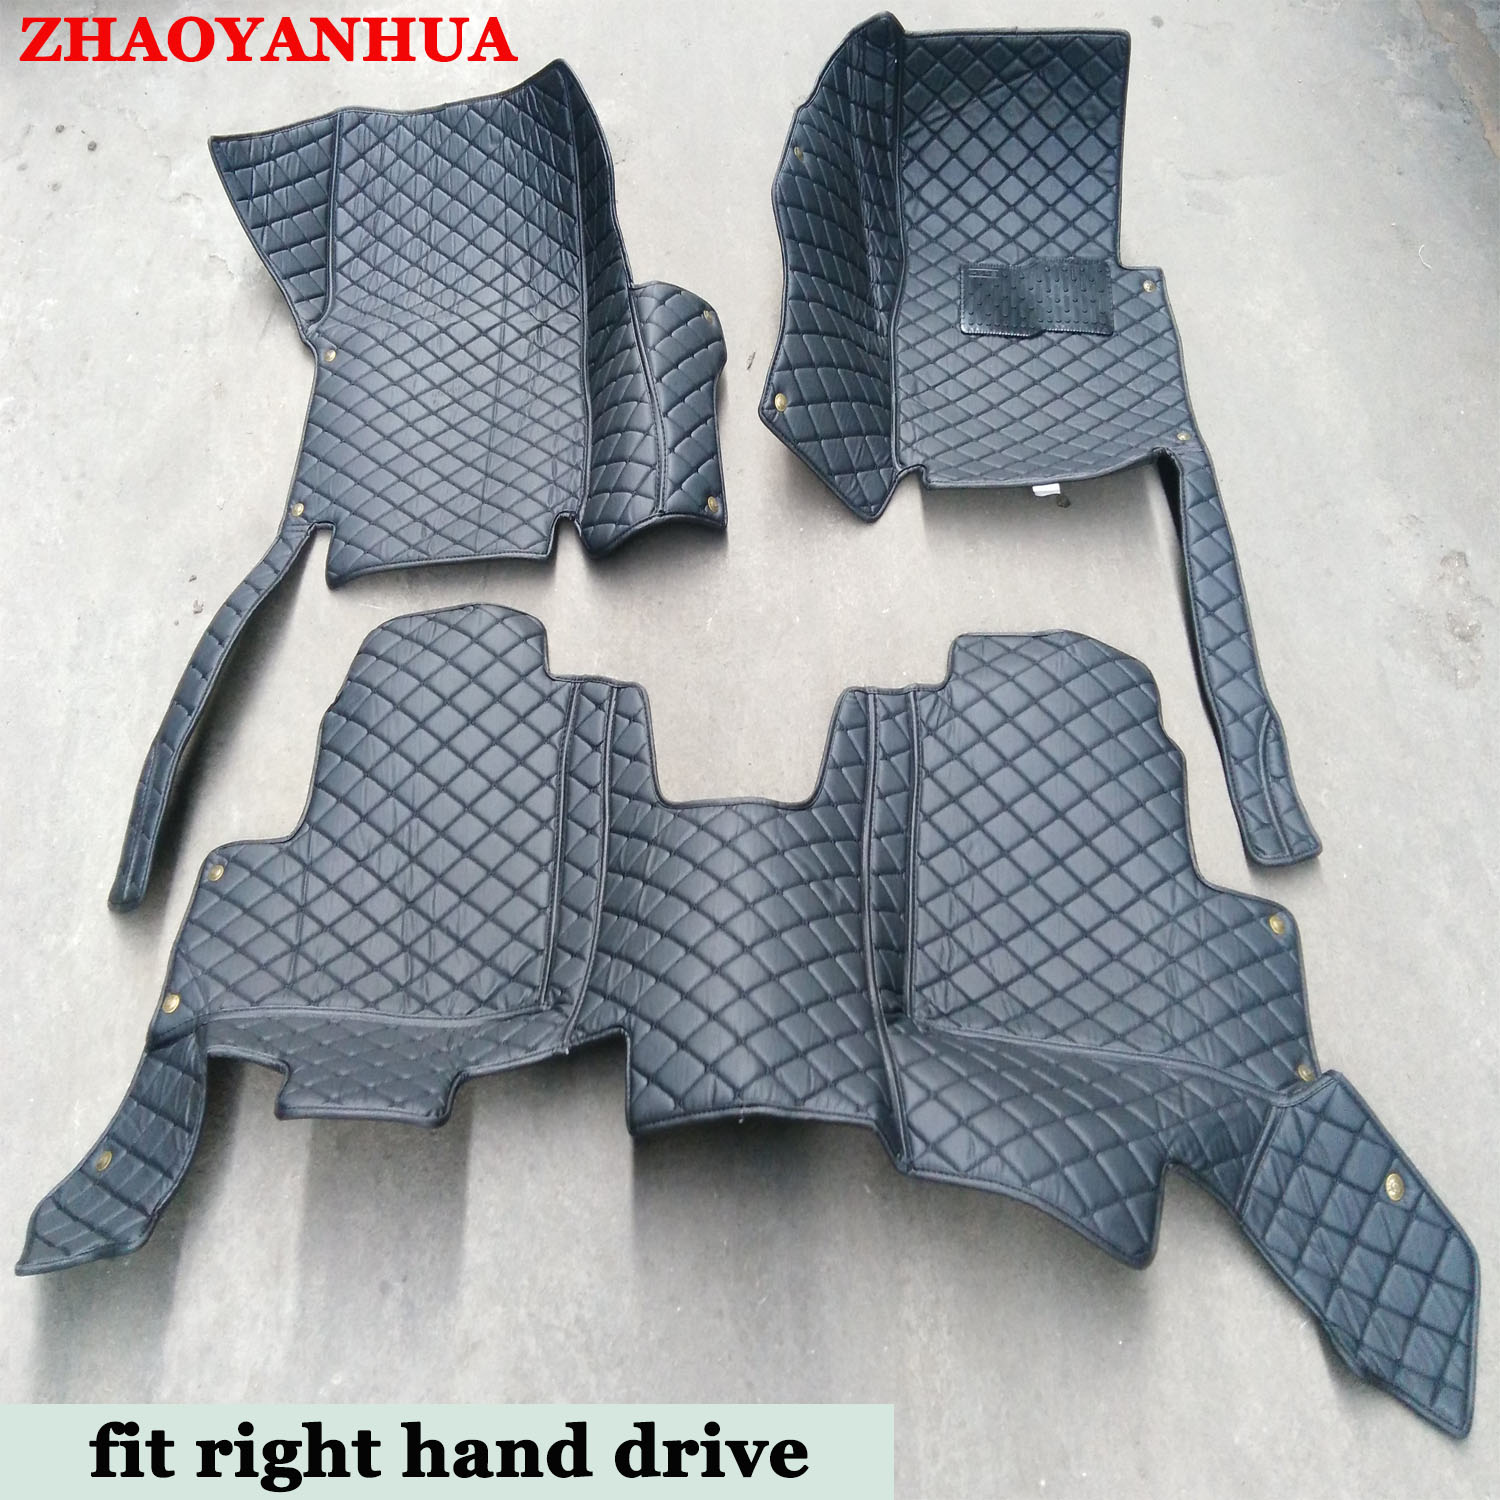 Right hand drive car <font><b>floor</b></font> <font><b>mats</b></font> for <font><b>LEXUS</b></font> <font><b>RX300</b></font> RX350 RX350L RX450H car-styling leather accessories carpet liners image